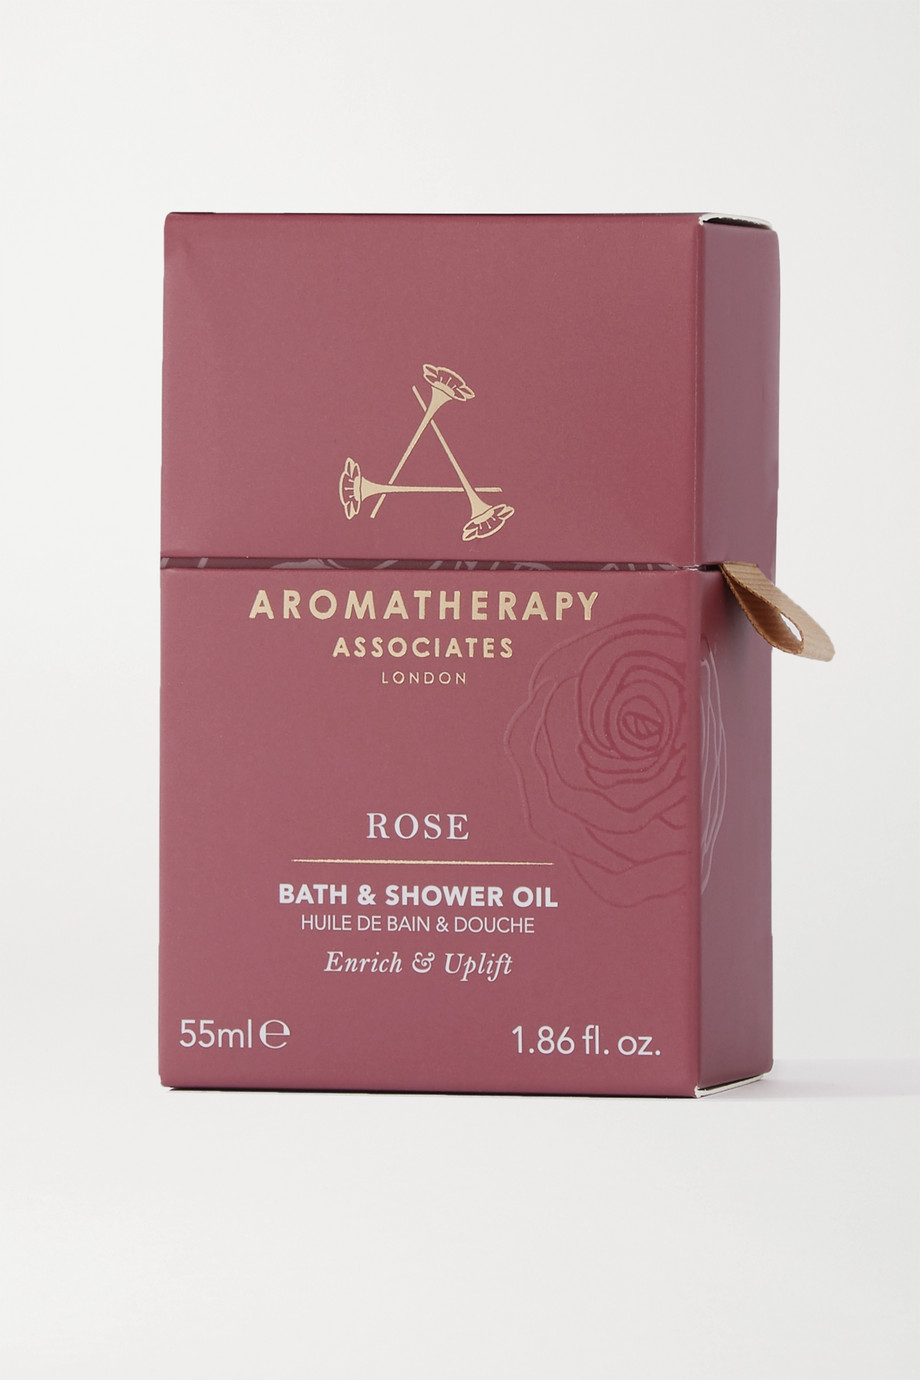 Aromatherapy Associates Rose Bath & Shower Oil, 55ml